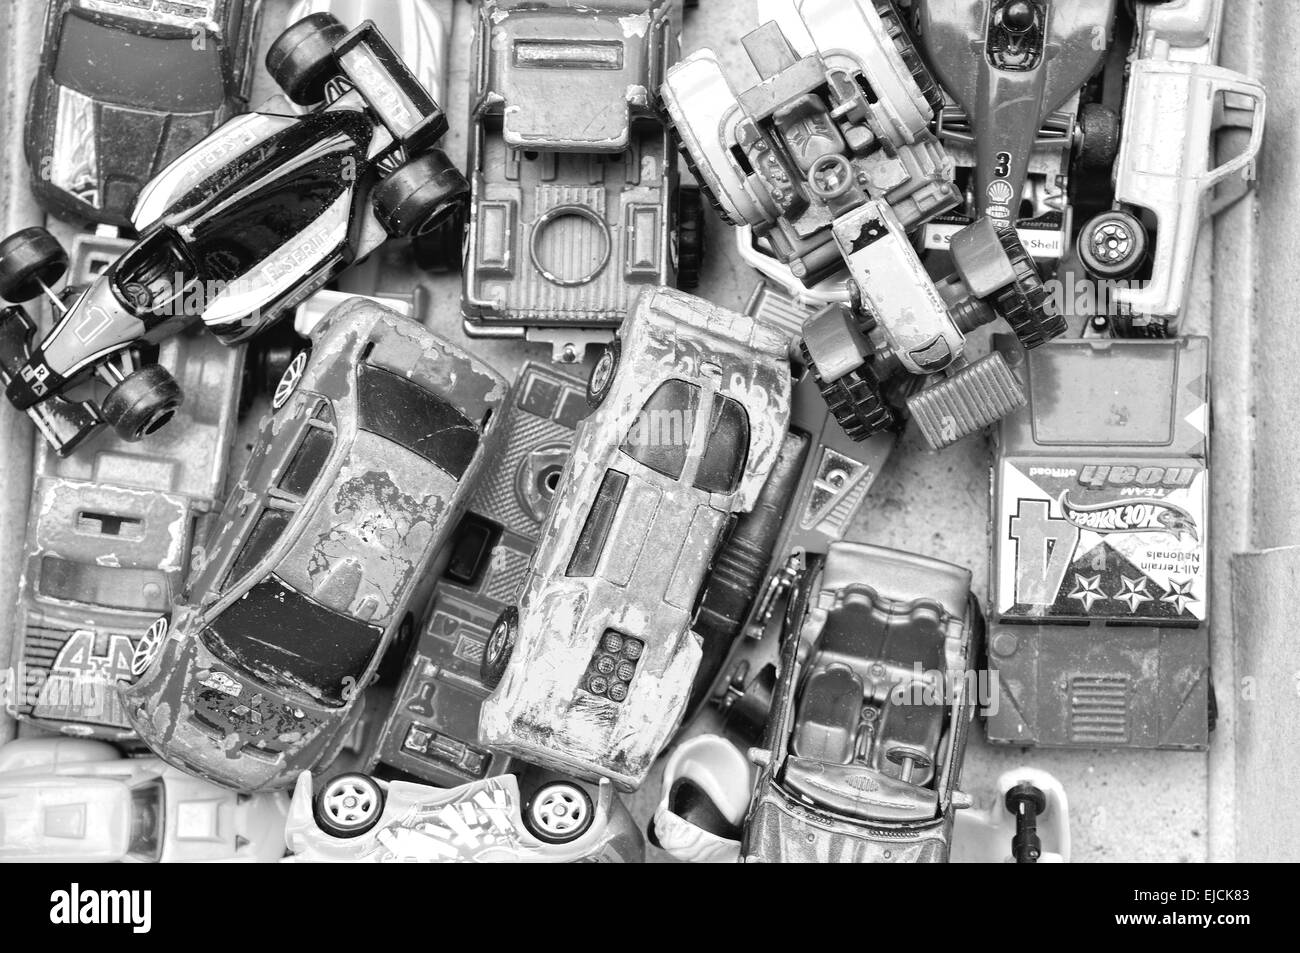 Toys in box black and white - Stock Image